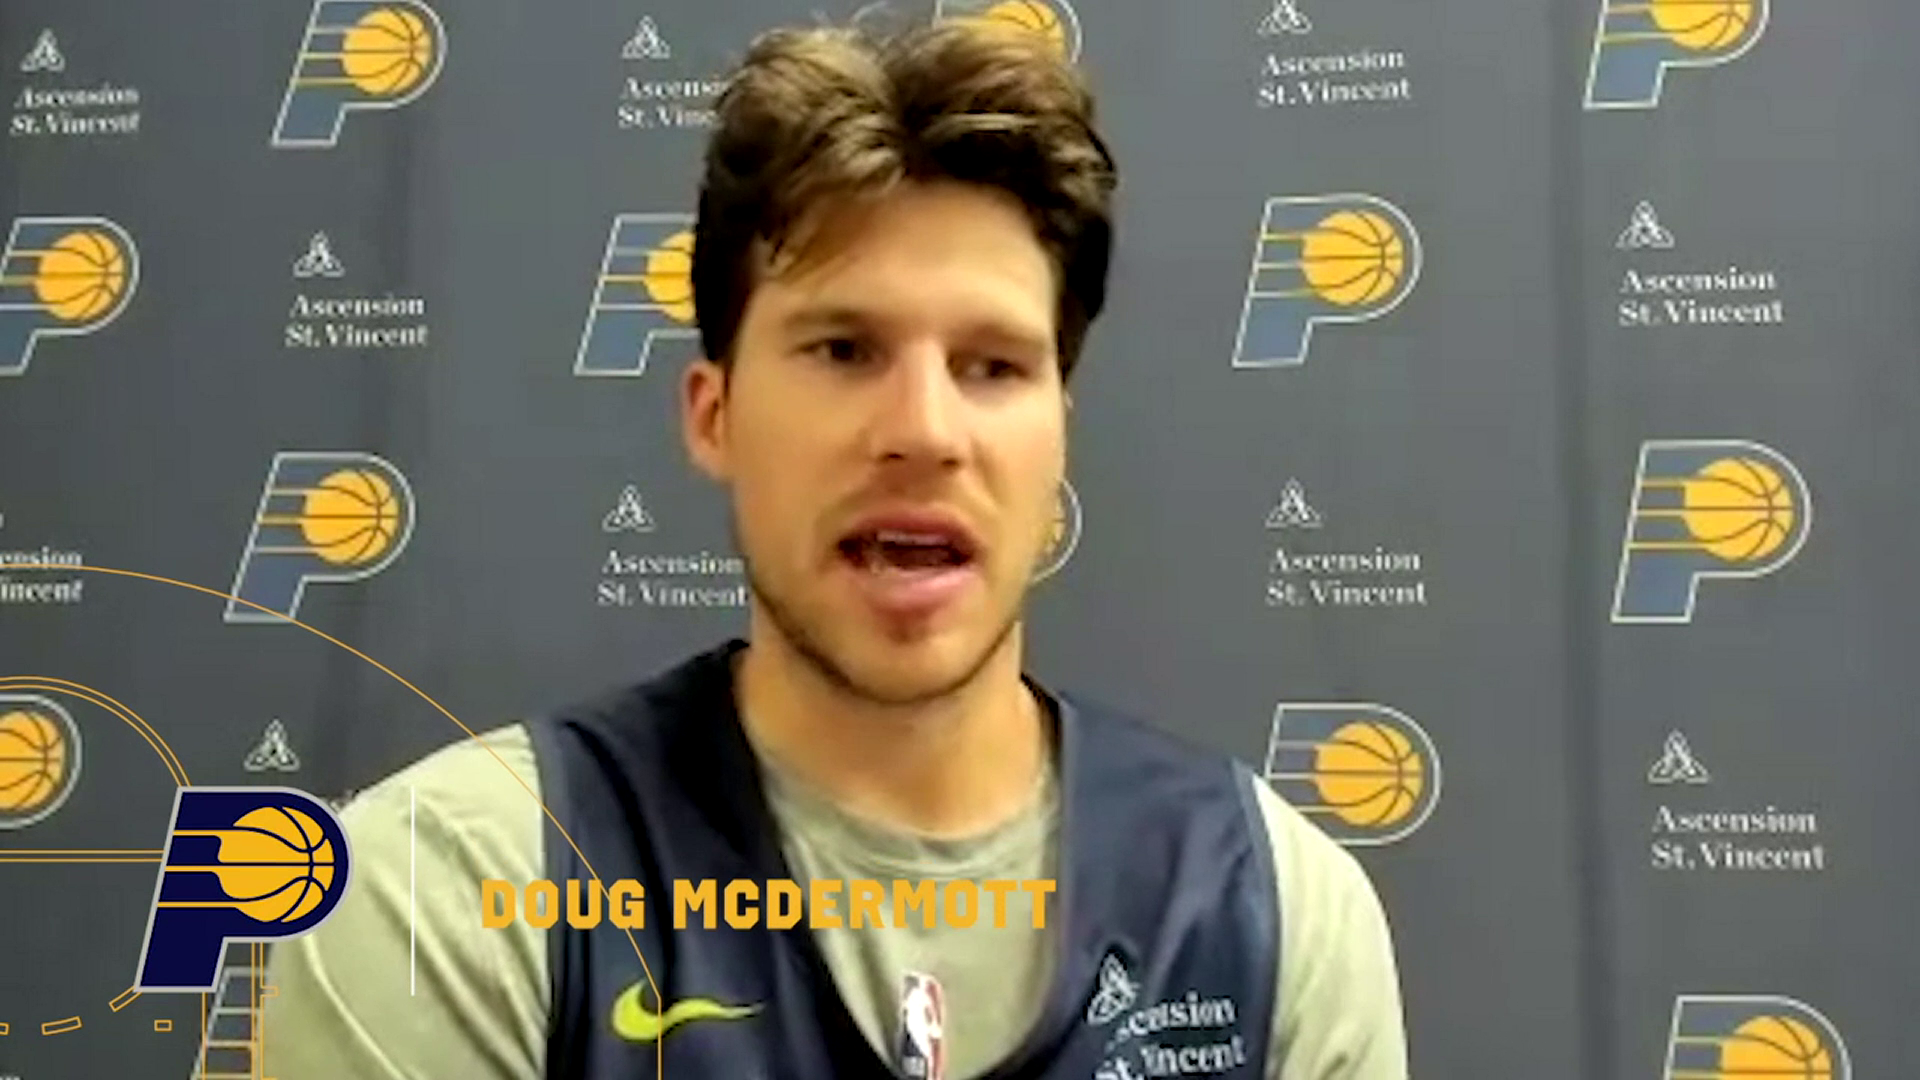 Pacers Having an Upbeat Training Camp